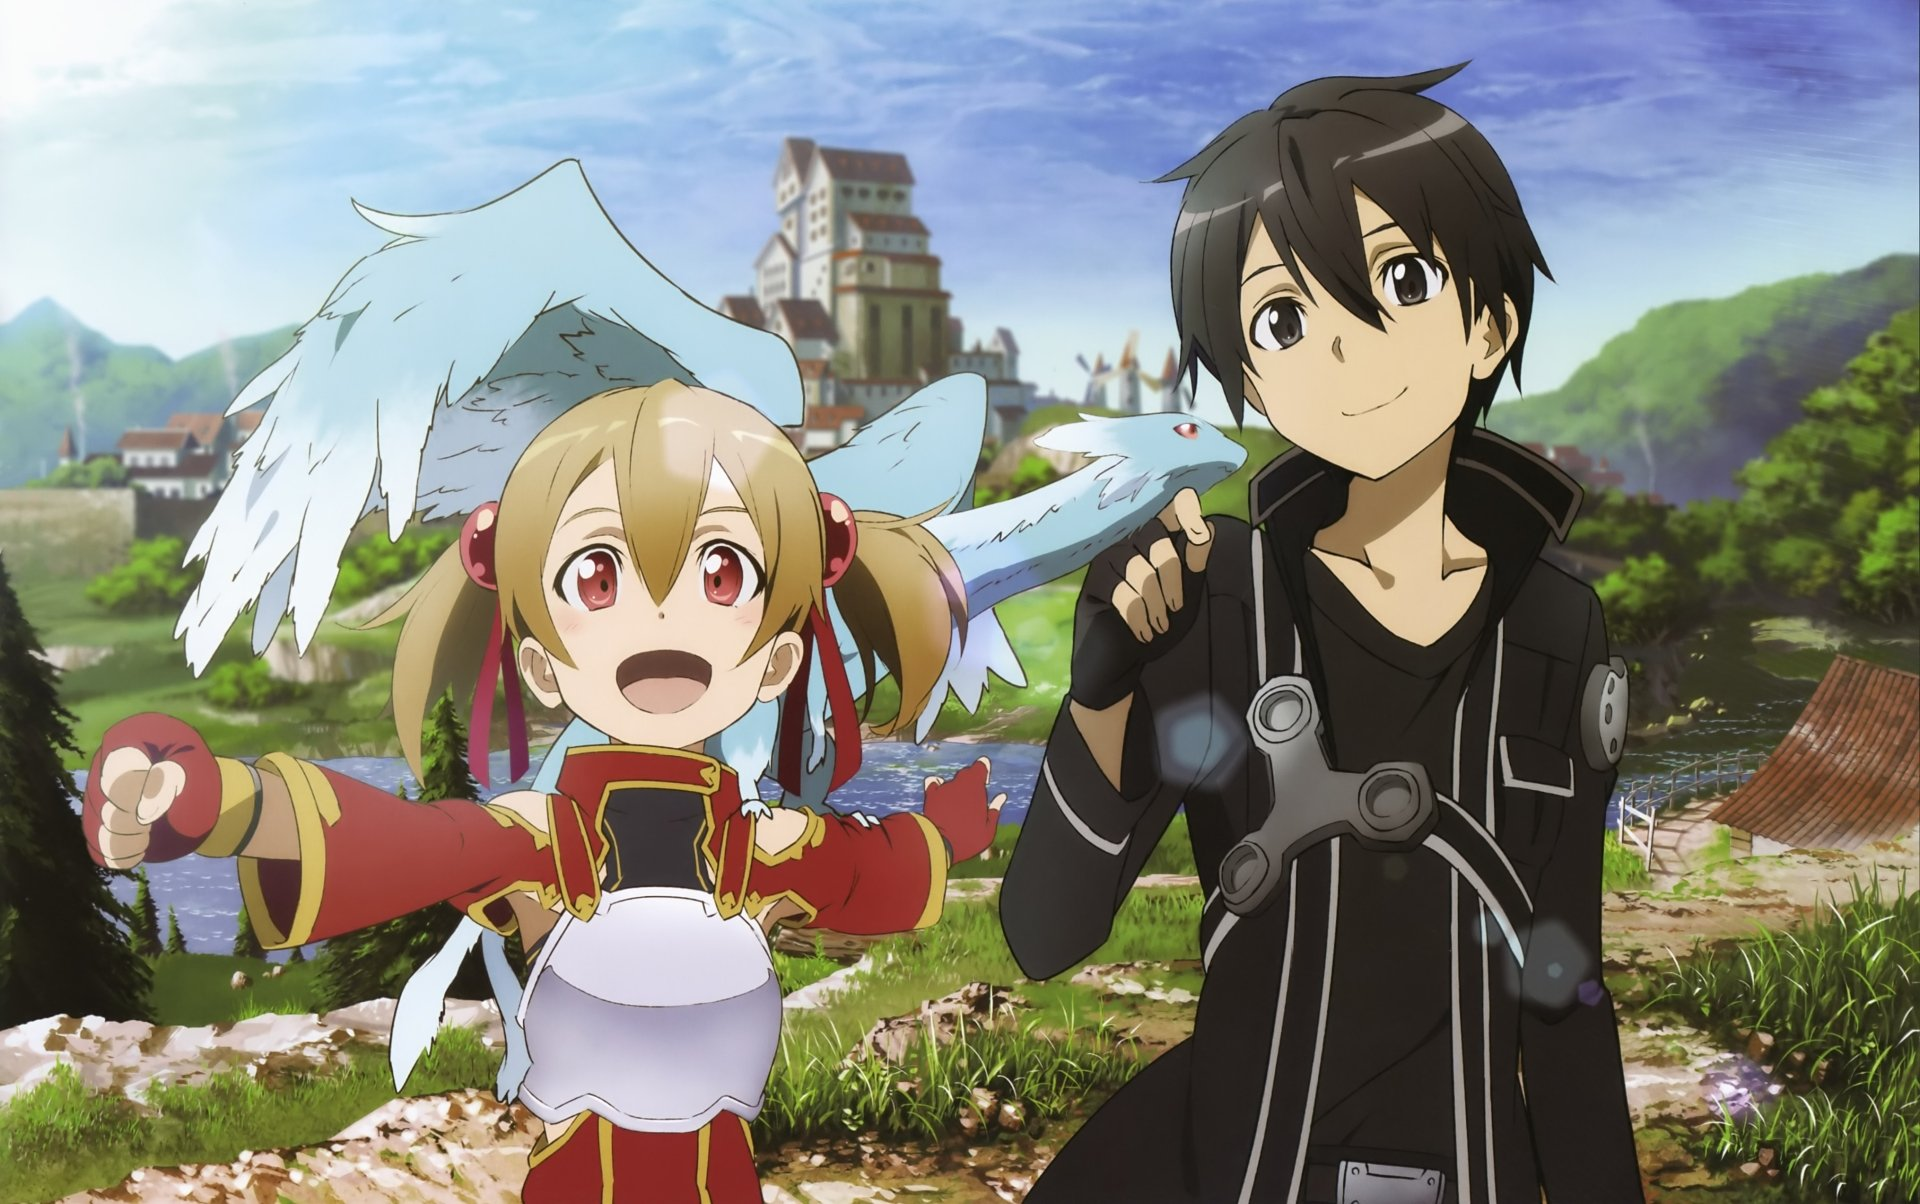 Silica and Kirito 4k Ultra HD Wallpaper and Background ...